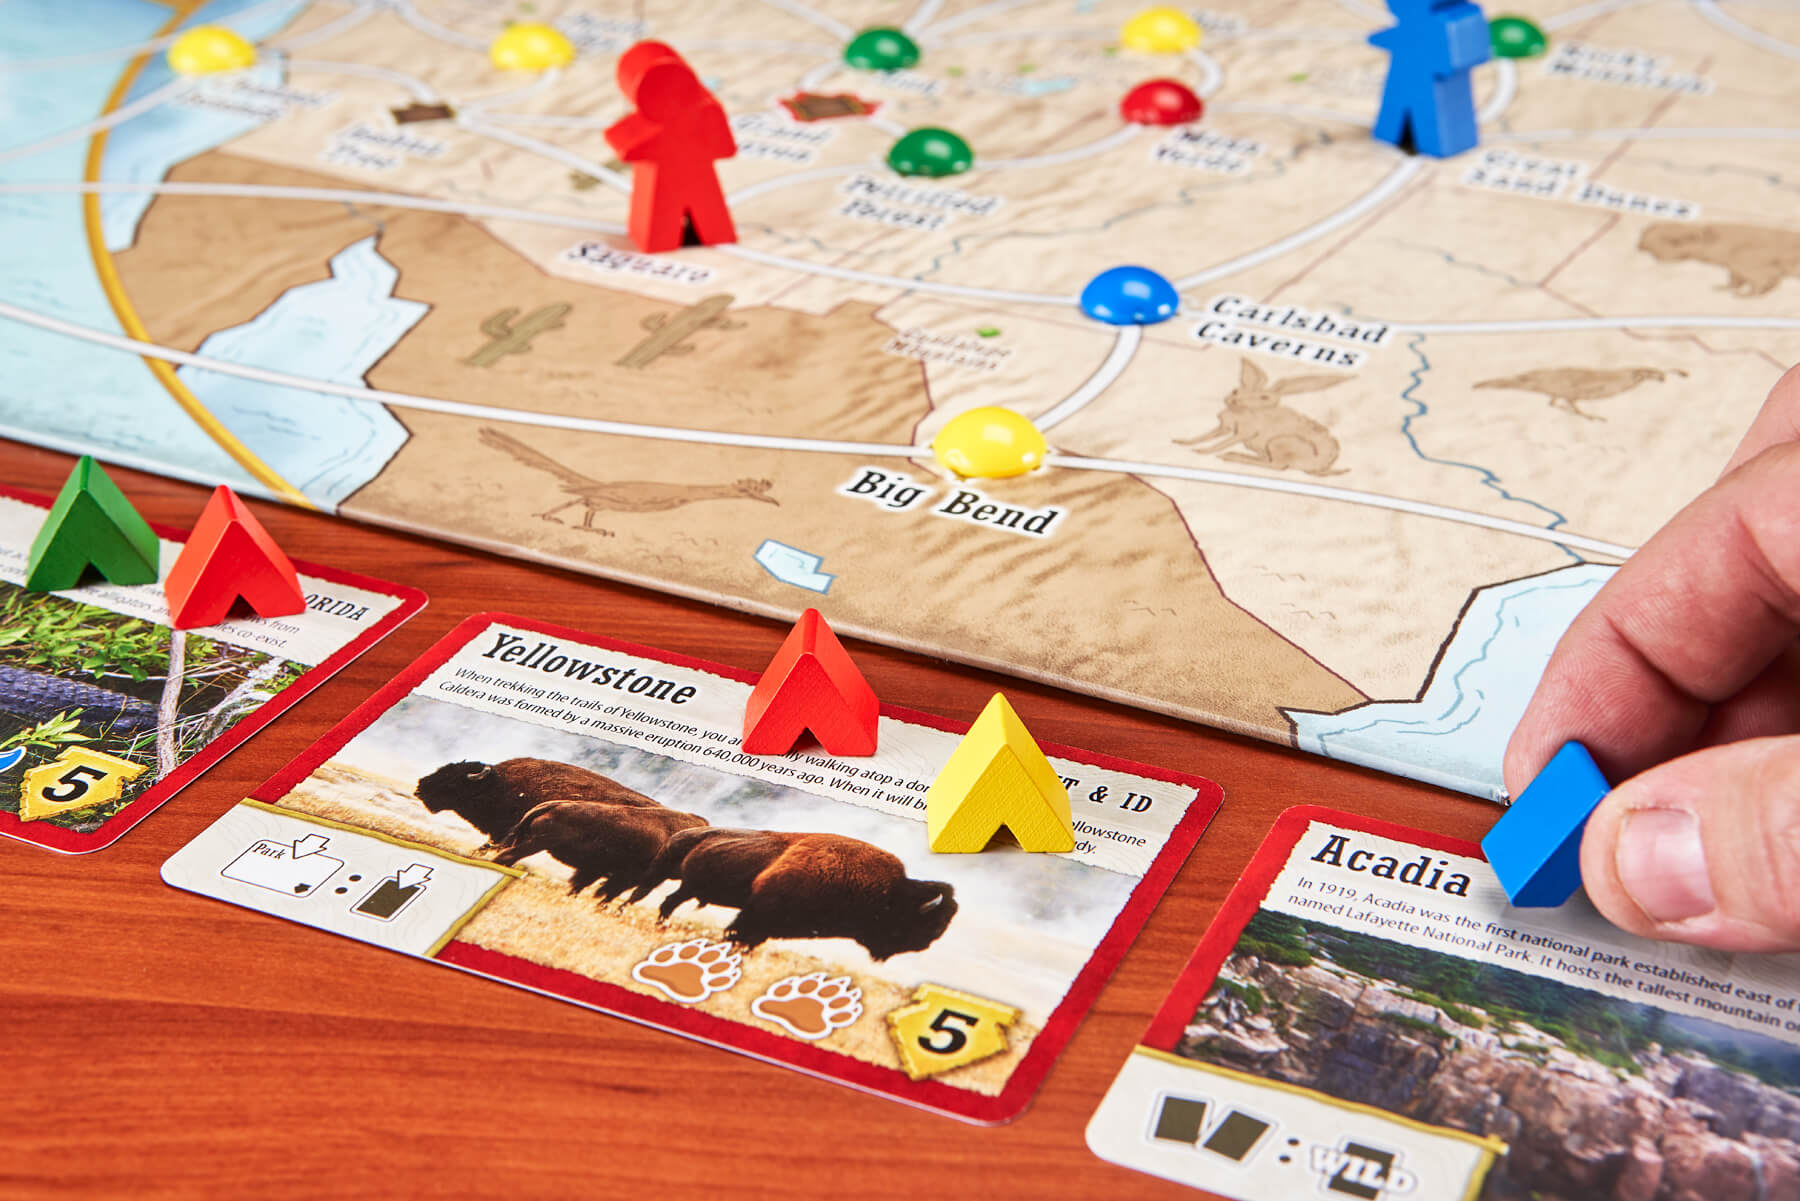 Game cards for Trekking The National Parks board game